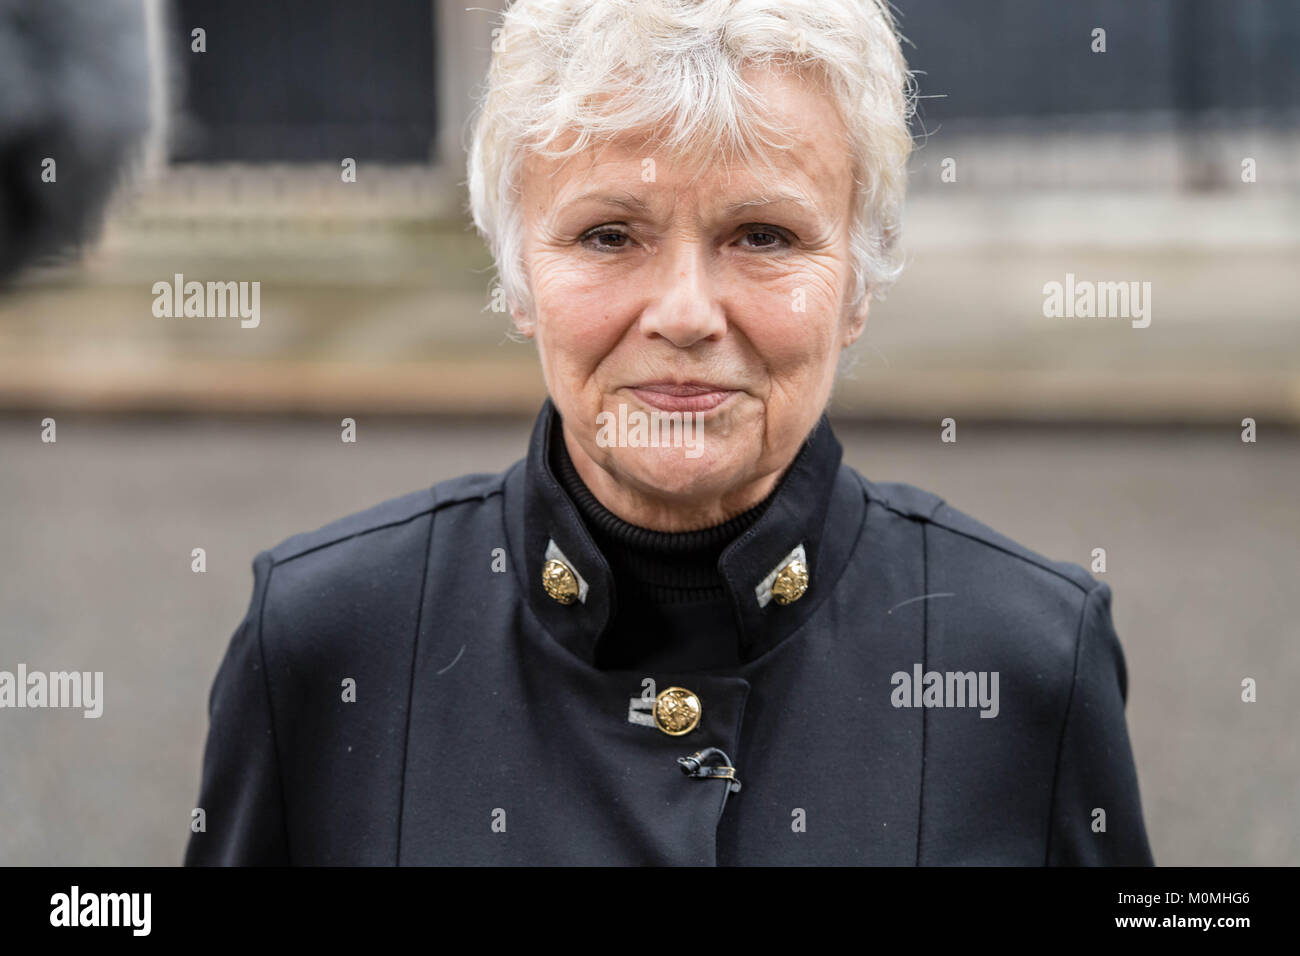 London, 23rd January 2018, Dame Julie Walters, actress and writer  arrives in Downing Street to present a Woman's Stock Photo